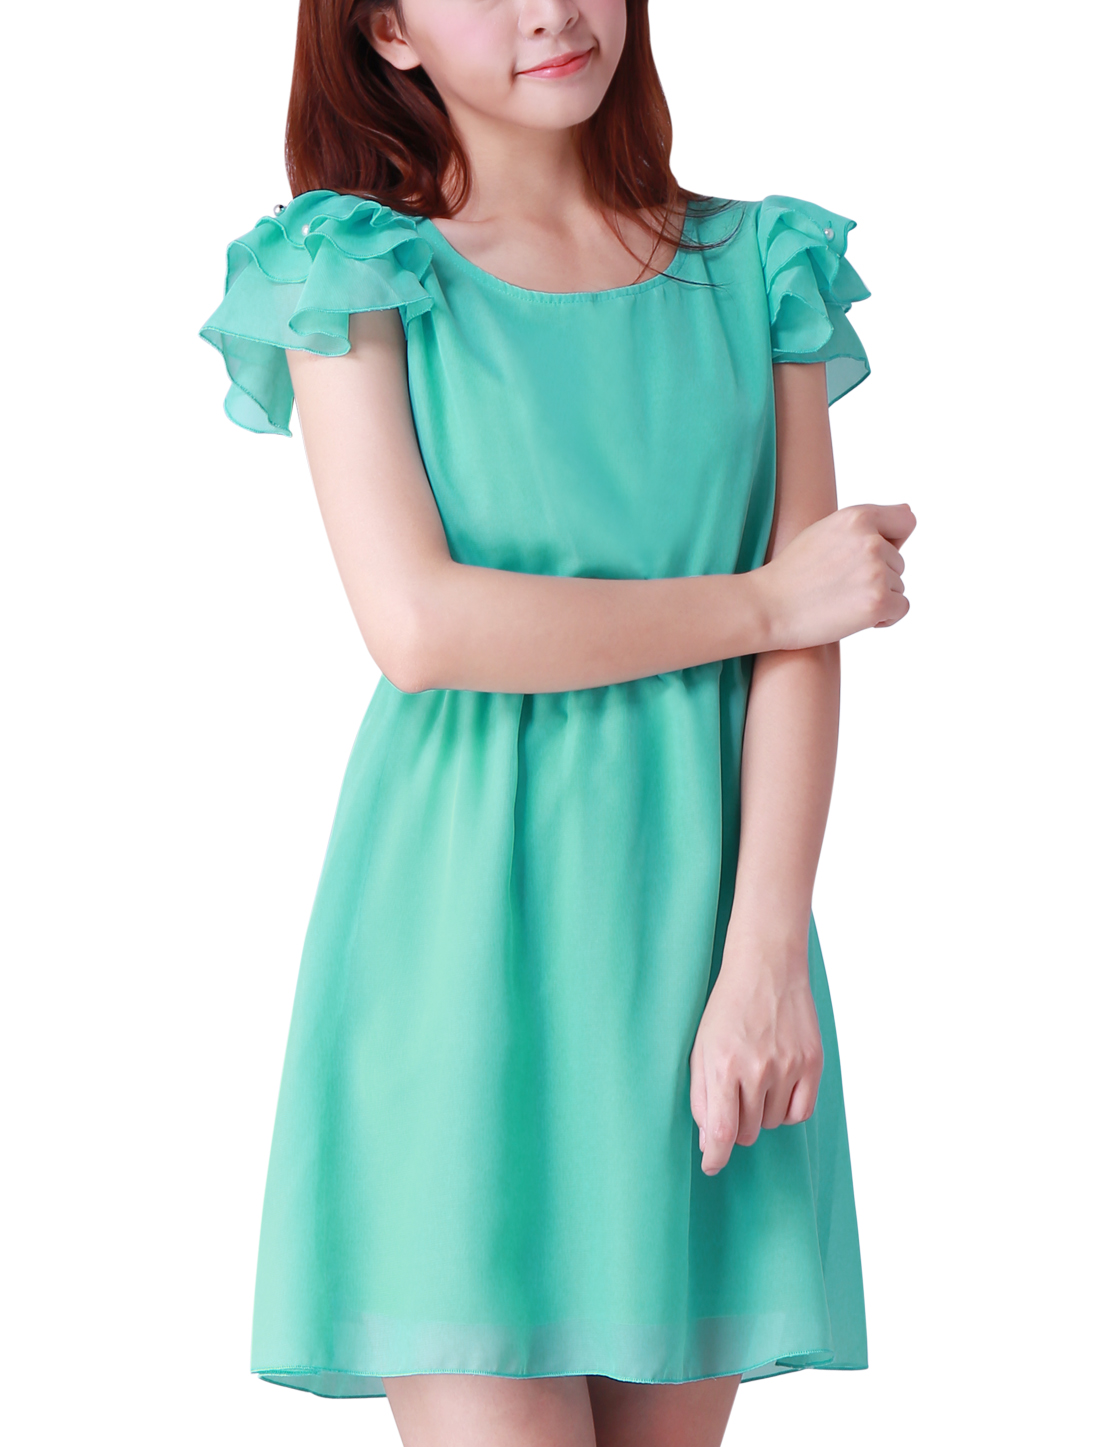 Scoop Neck Short Tiered Ruffled Sleeve Light Blue Dress for Lady M